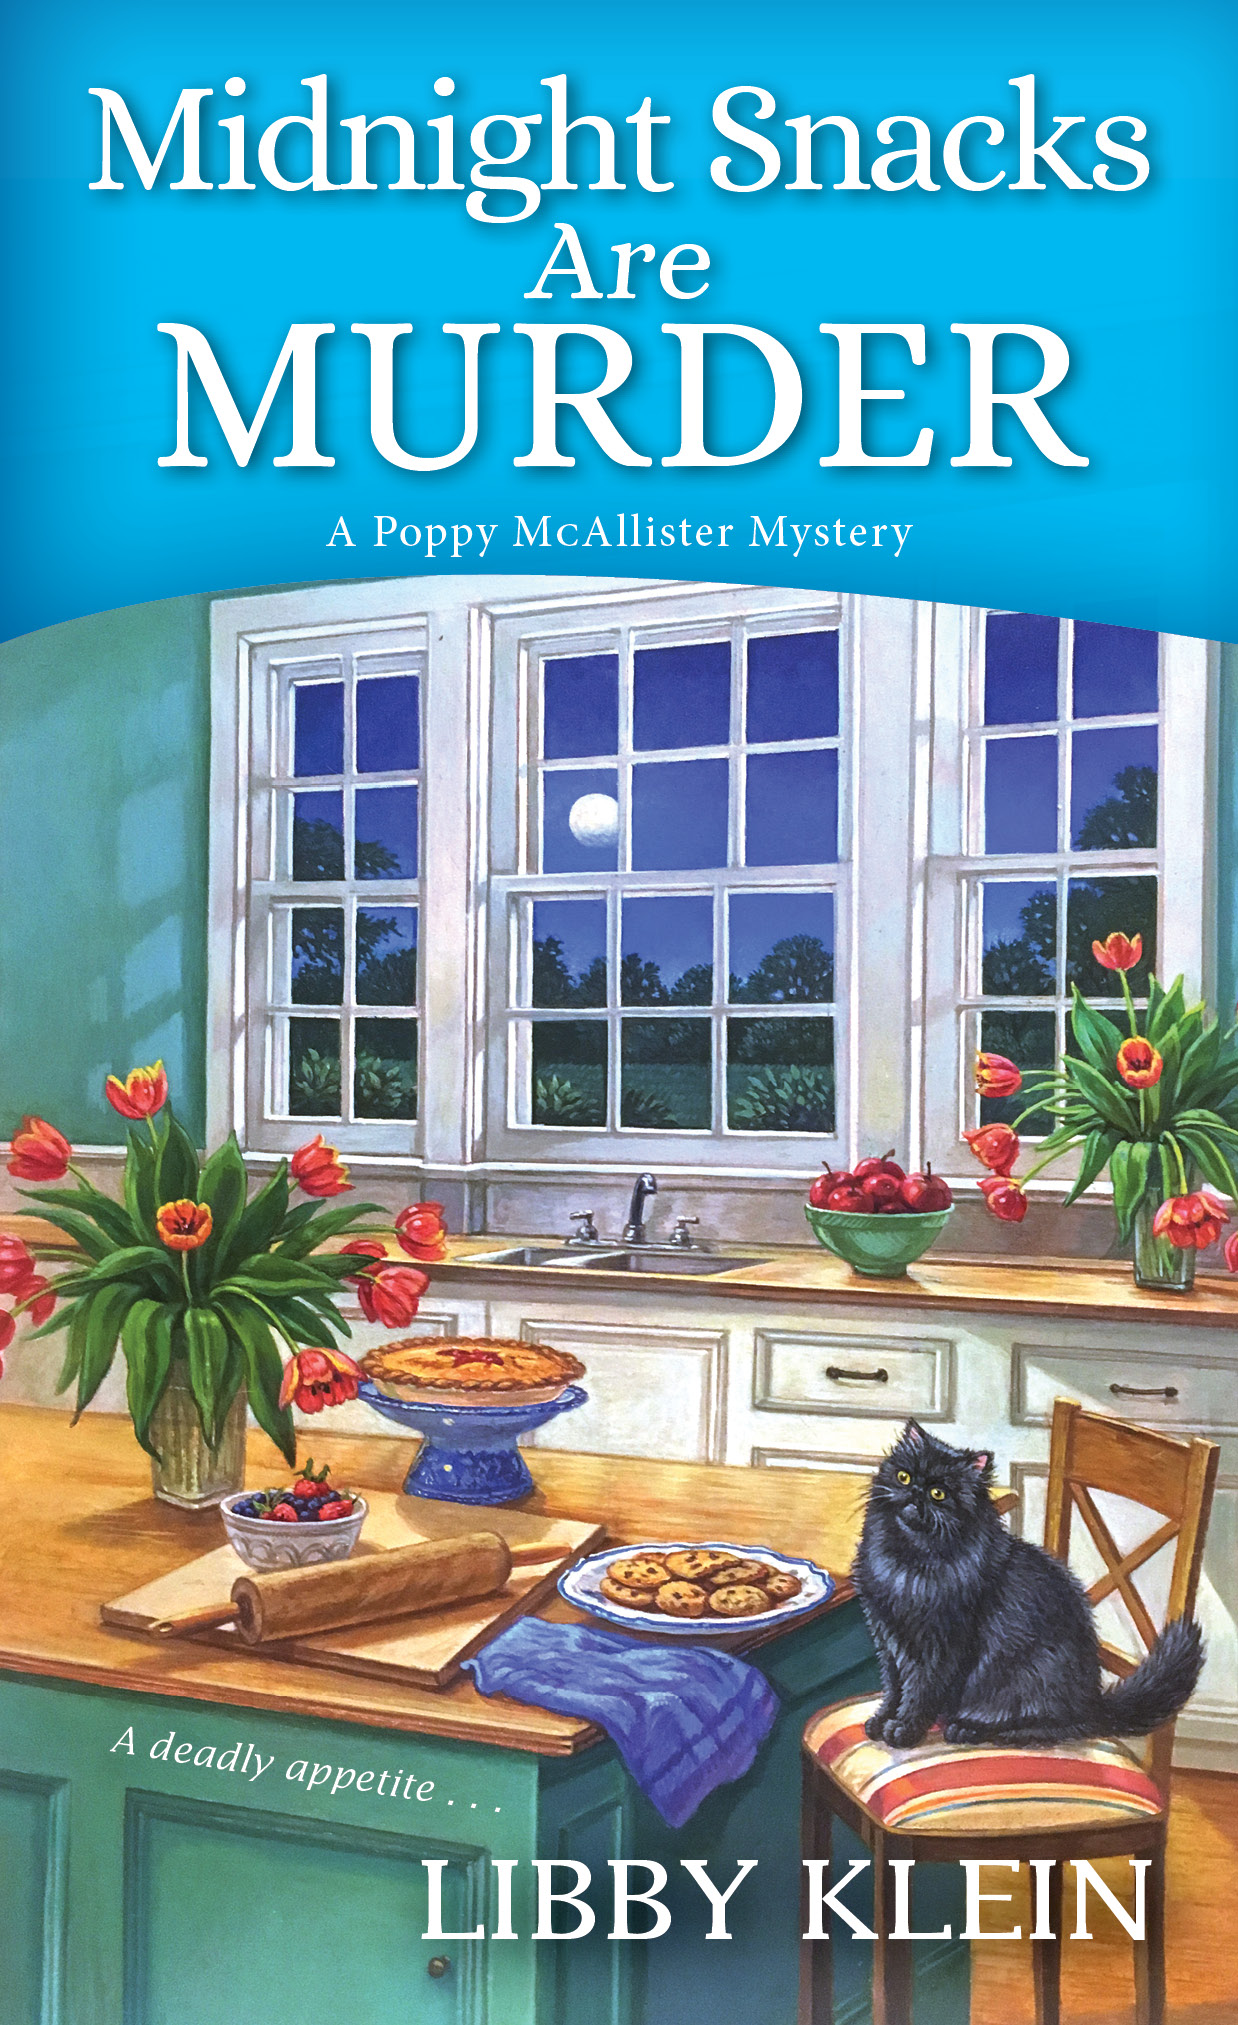 Blog Tour & Giveaway: Midnight Snacks are Murder by Libby Klein